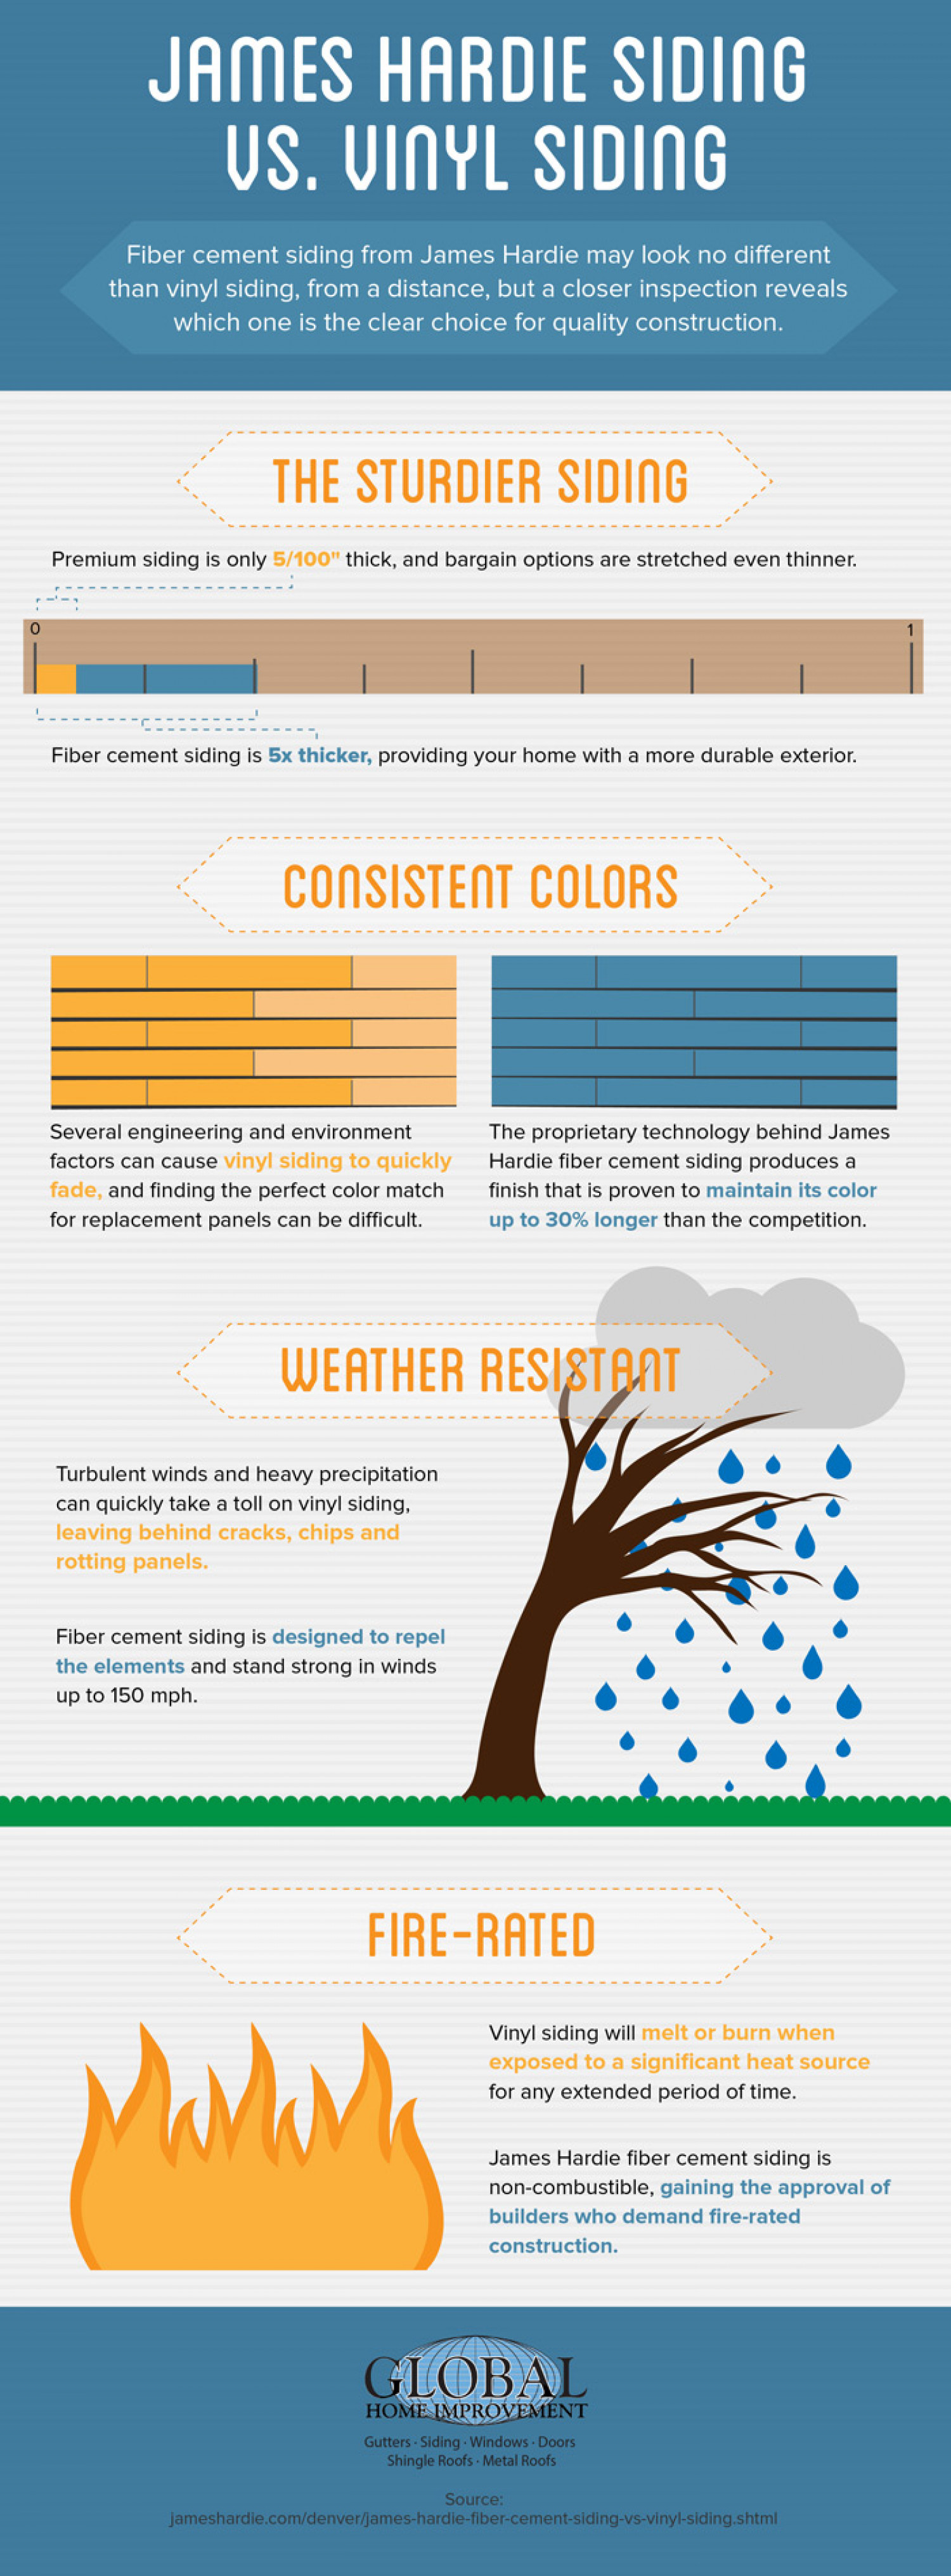 James Hardie Siding vs Vinyl Siding Infographic